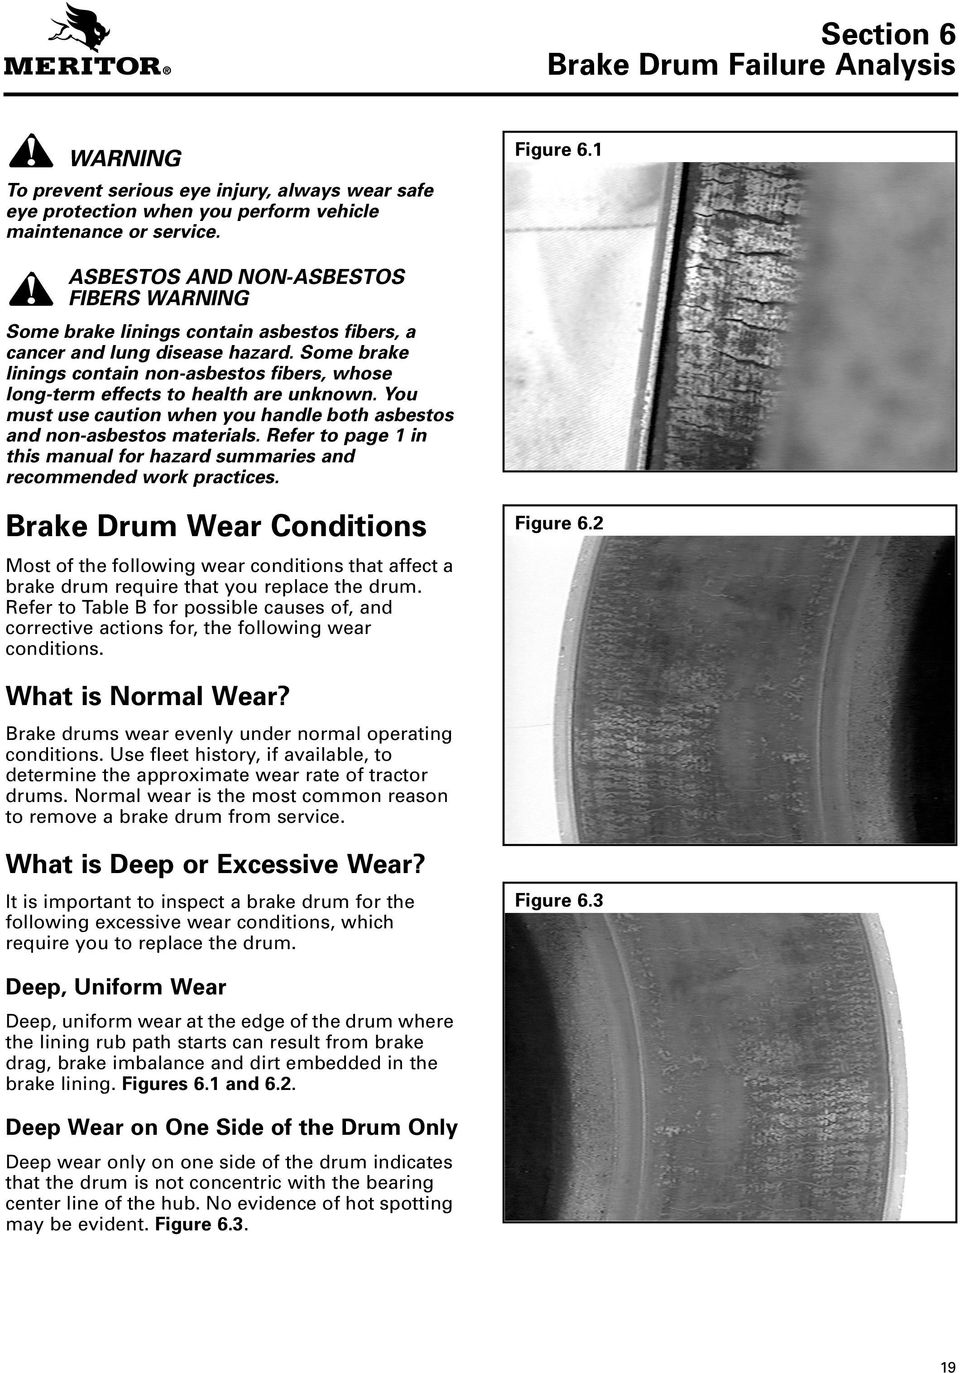 Some brake linings contain non-asbestos fibers, whose long-term effects to health are unknown. You must use caution when you handle both asbestos and non-asbestos materials.